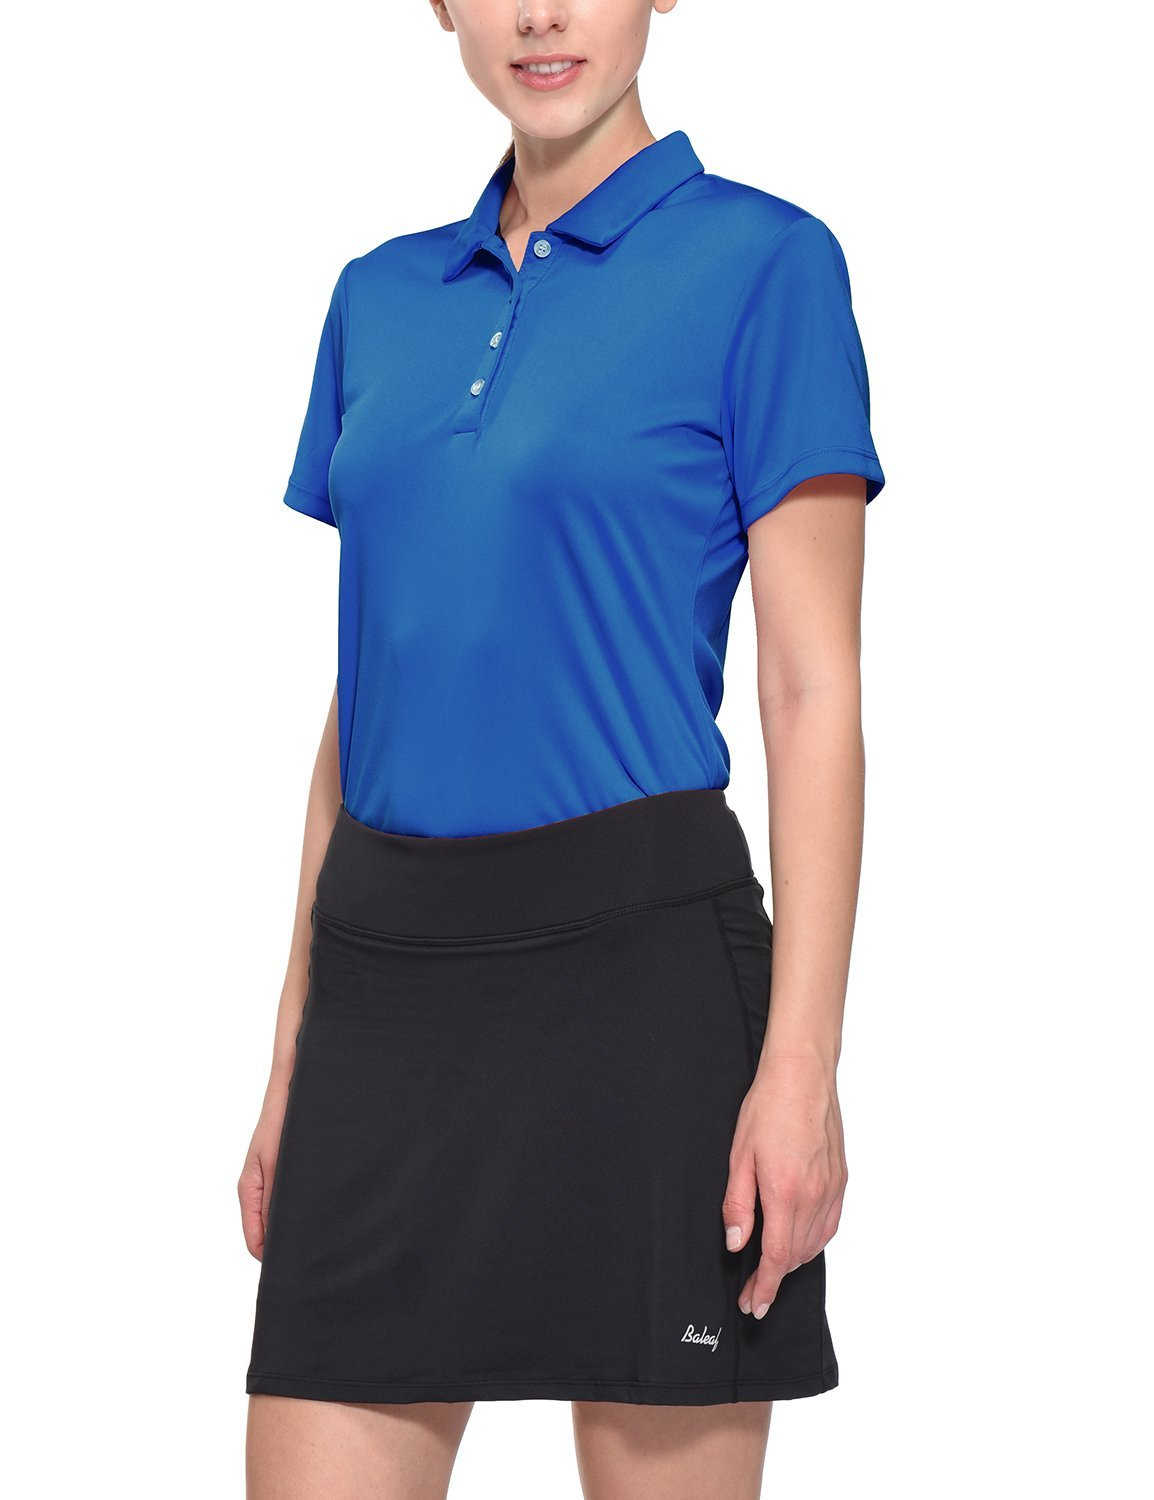 Baleaf Women's Golf Tennis Polo Shirts Quick Dry UPF 50+ Royal Blue Size L by Baleaf